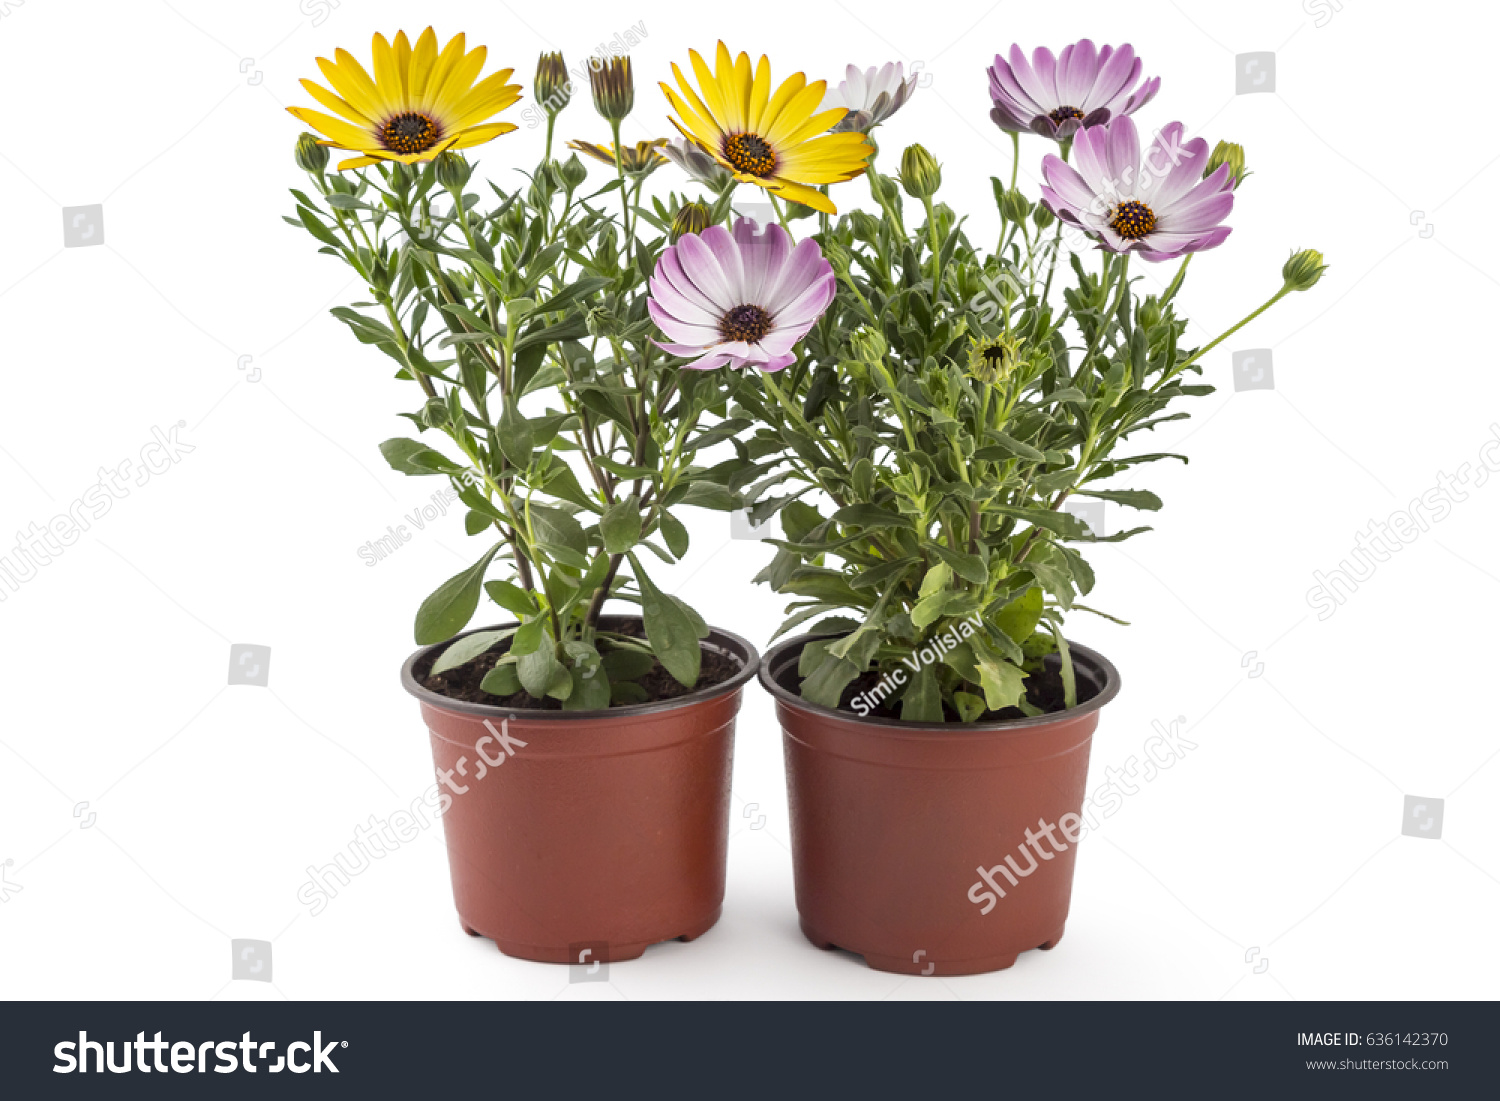 Orange and light pink young garden african daisy flowers with leaves id 636142370 izmirmasajfo